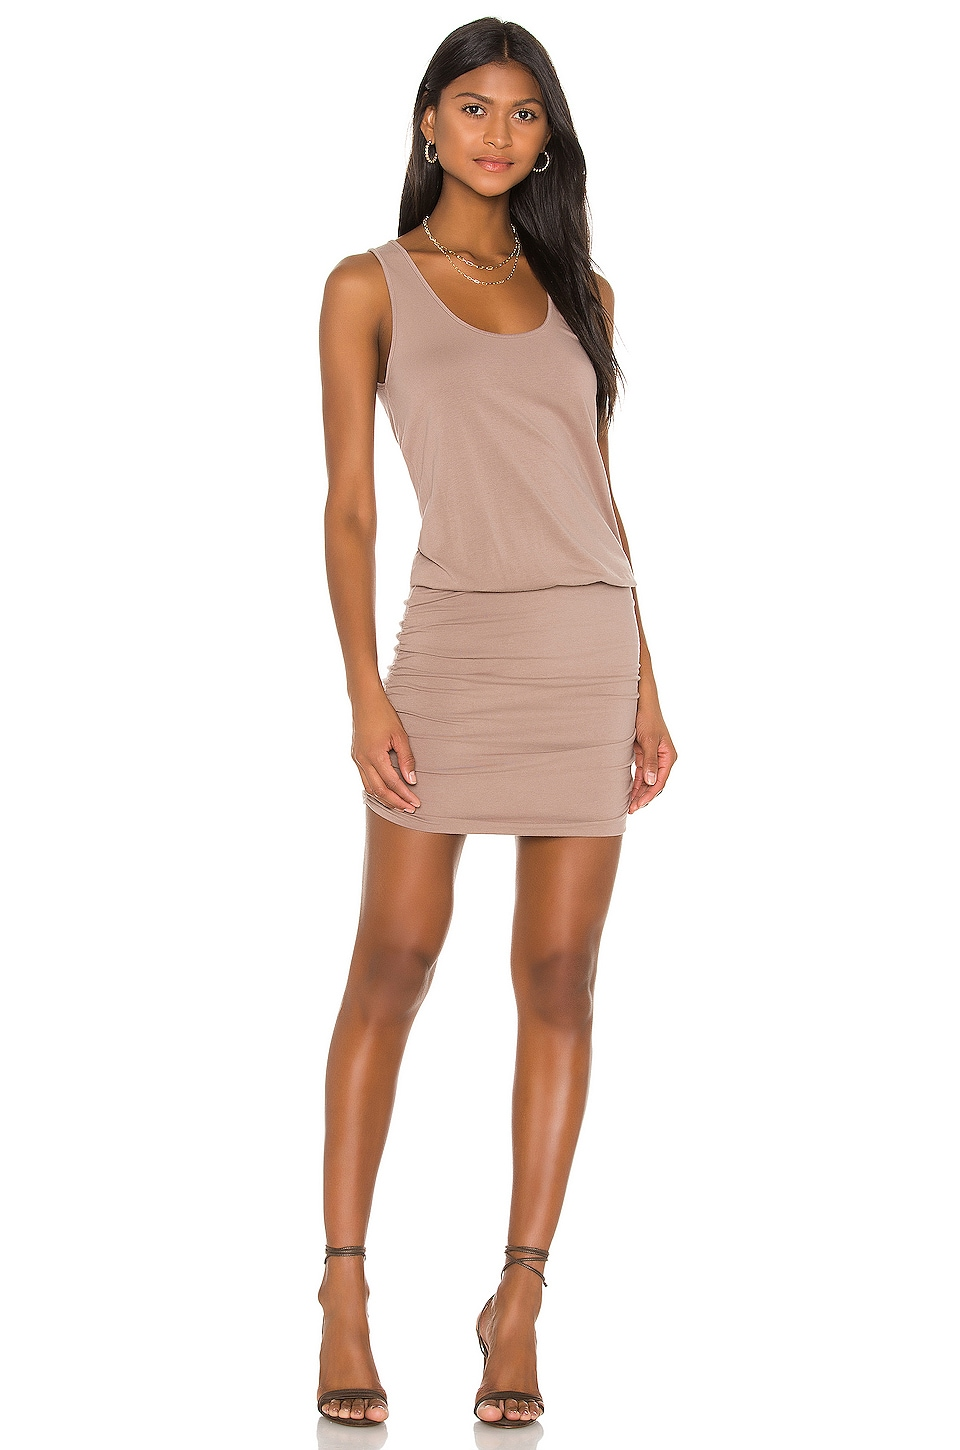 Draped Modal Jersey Mini Dress             Bobi                                                                                                       CA$ 90.97 13